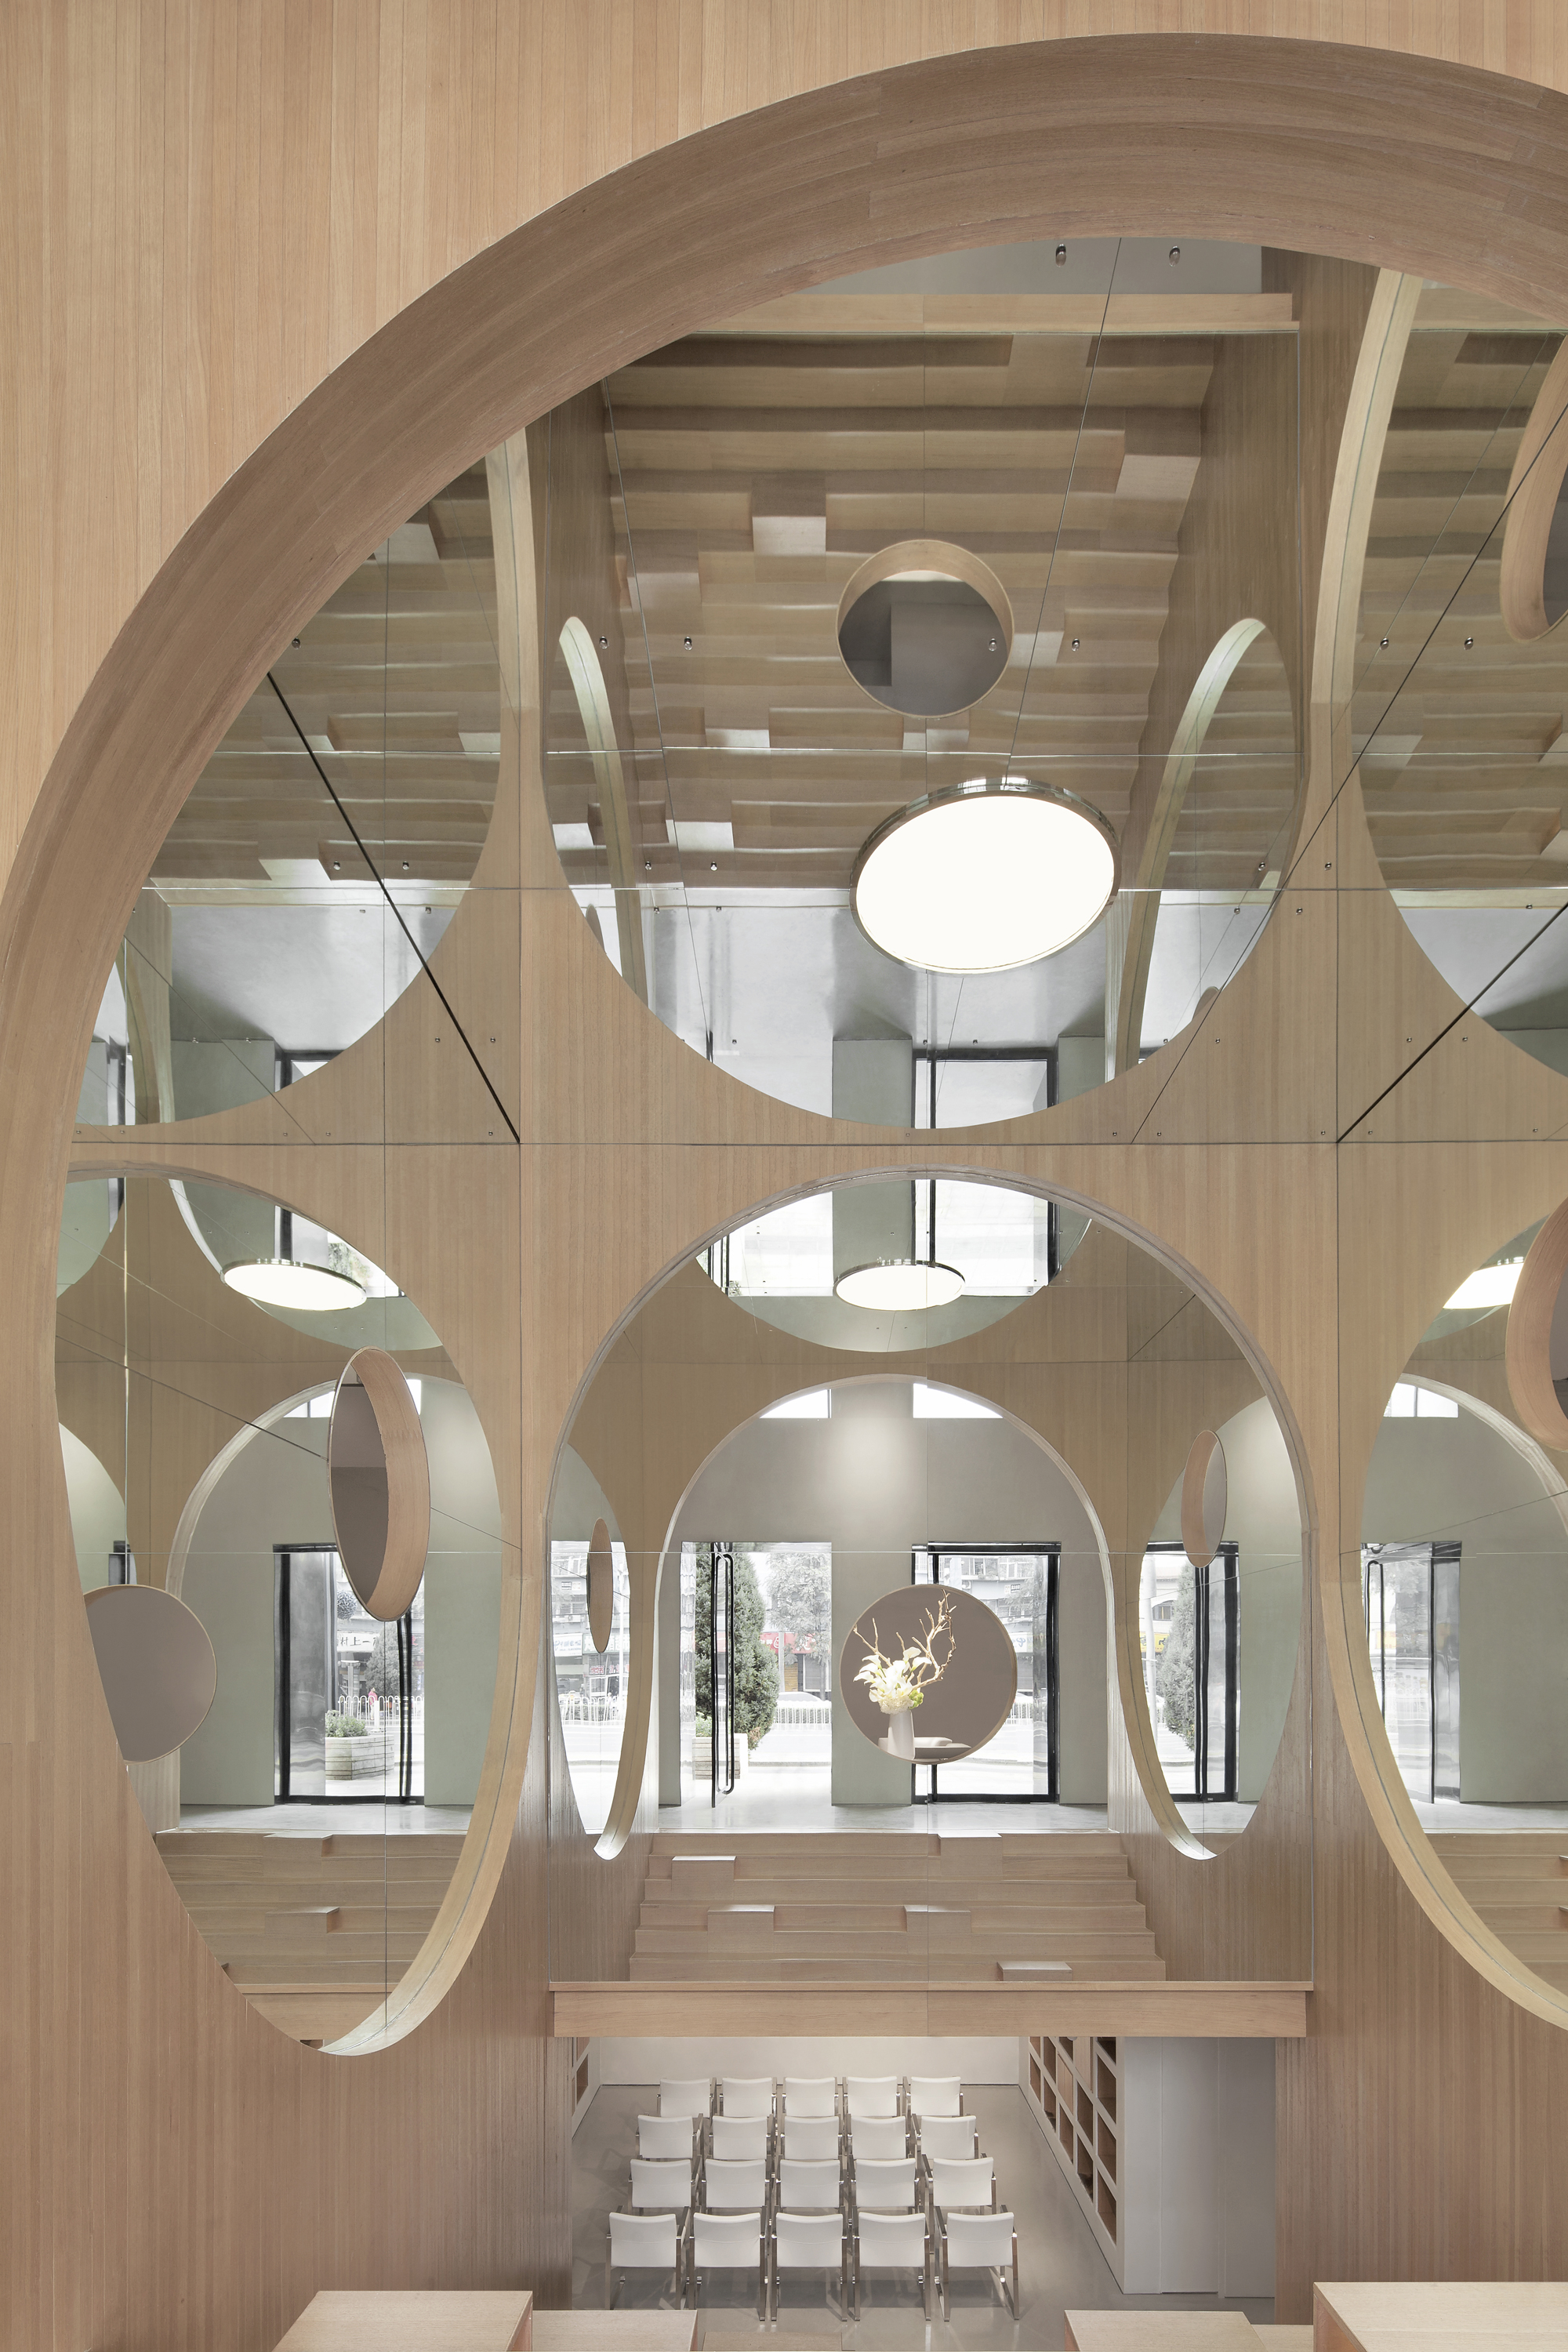 Interior work for the Art Auditorium in Beijing by PENDA